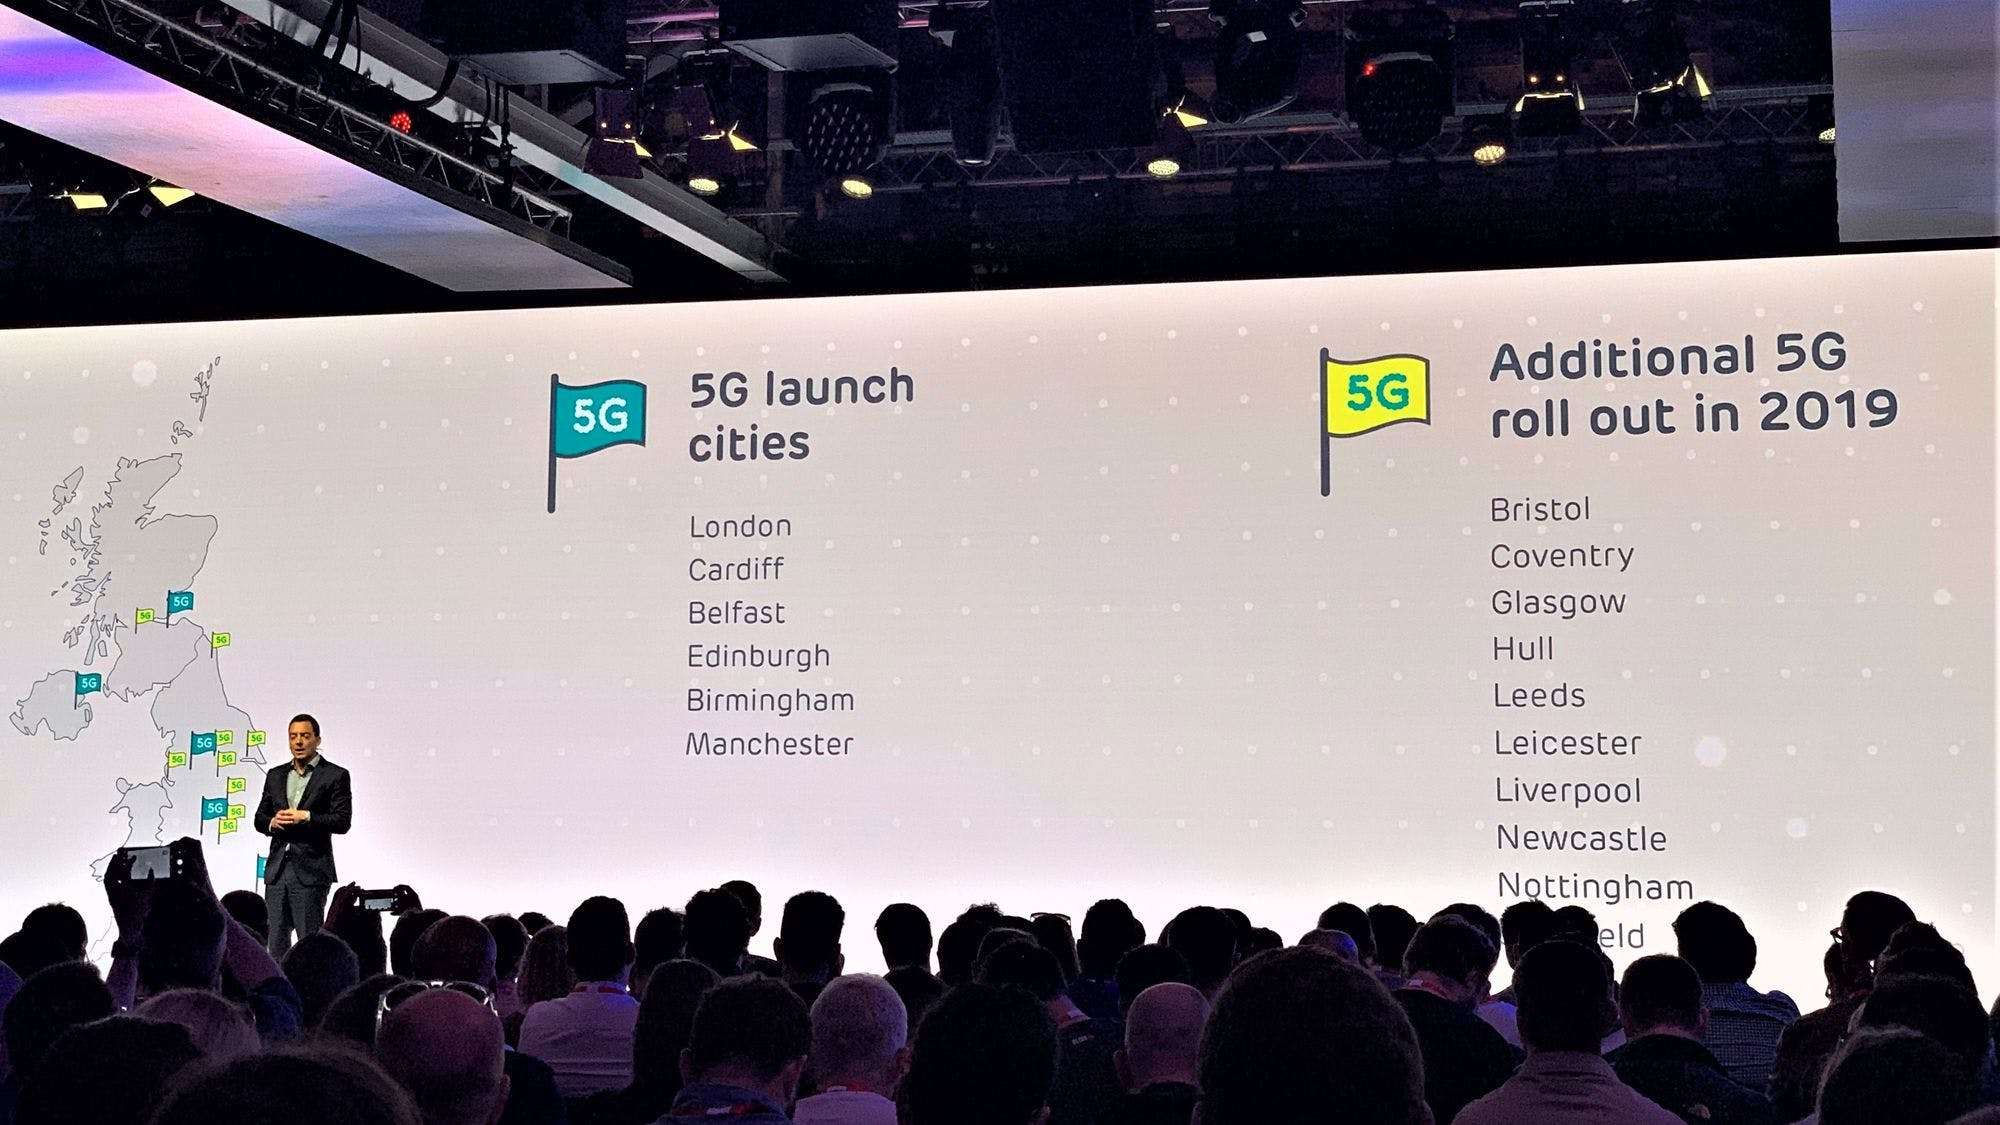 Marc Allera, CEO of BT's Consumer Brands, presents EE's 5G network rollout plans across the UK